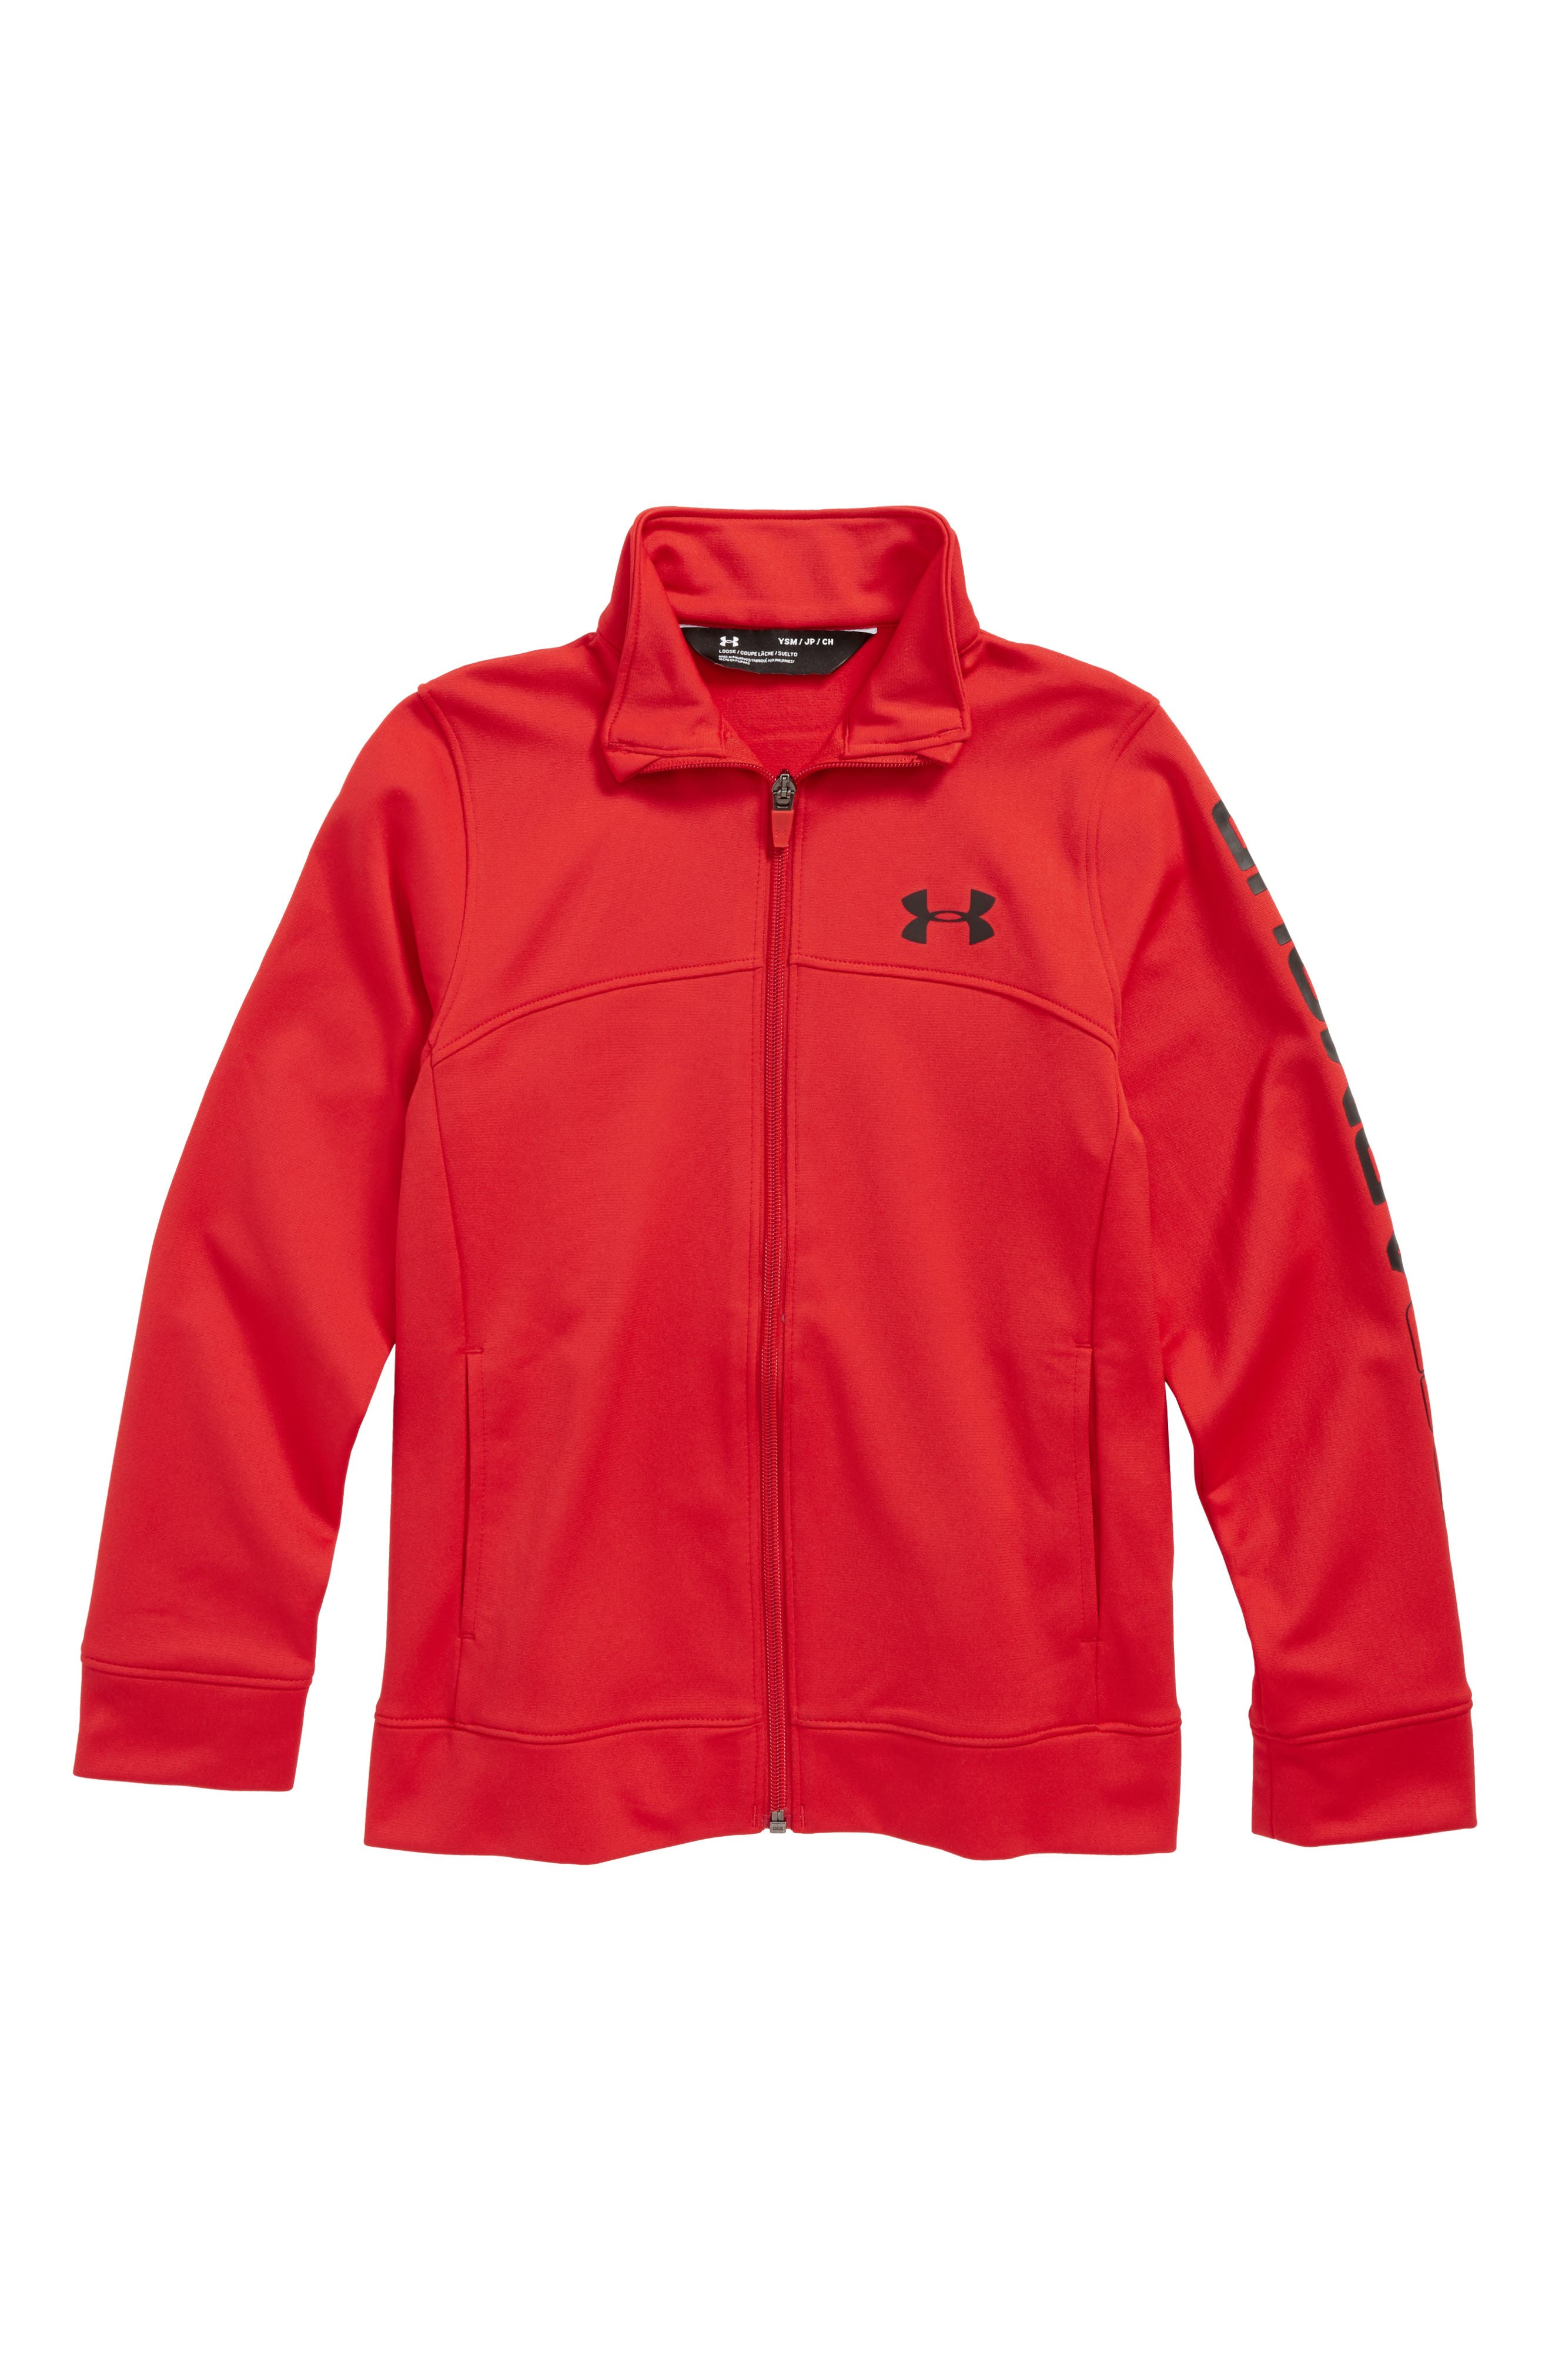 'Pennant' Warm Up Jacket,                         Main,                         color, Red/ Black